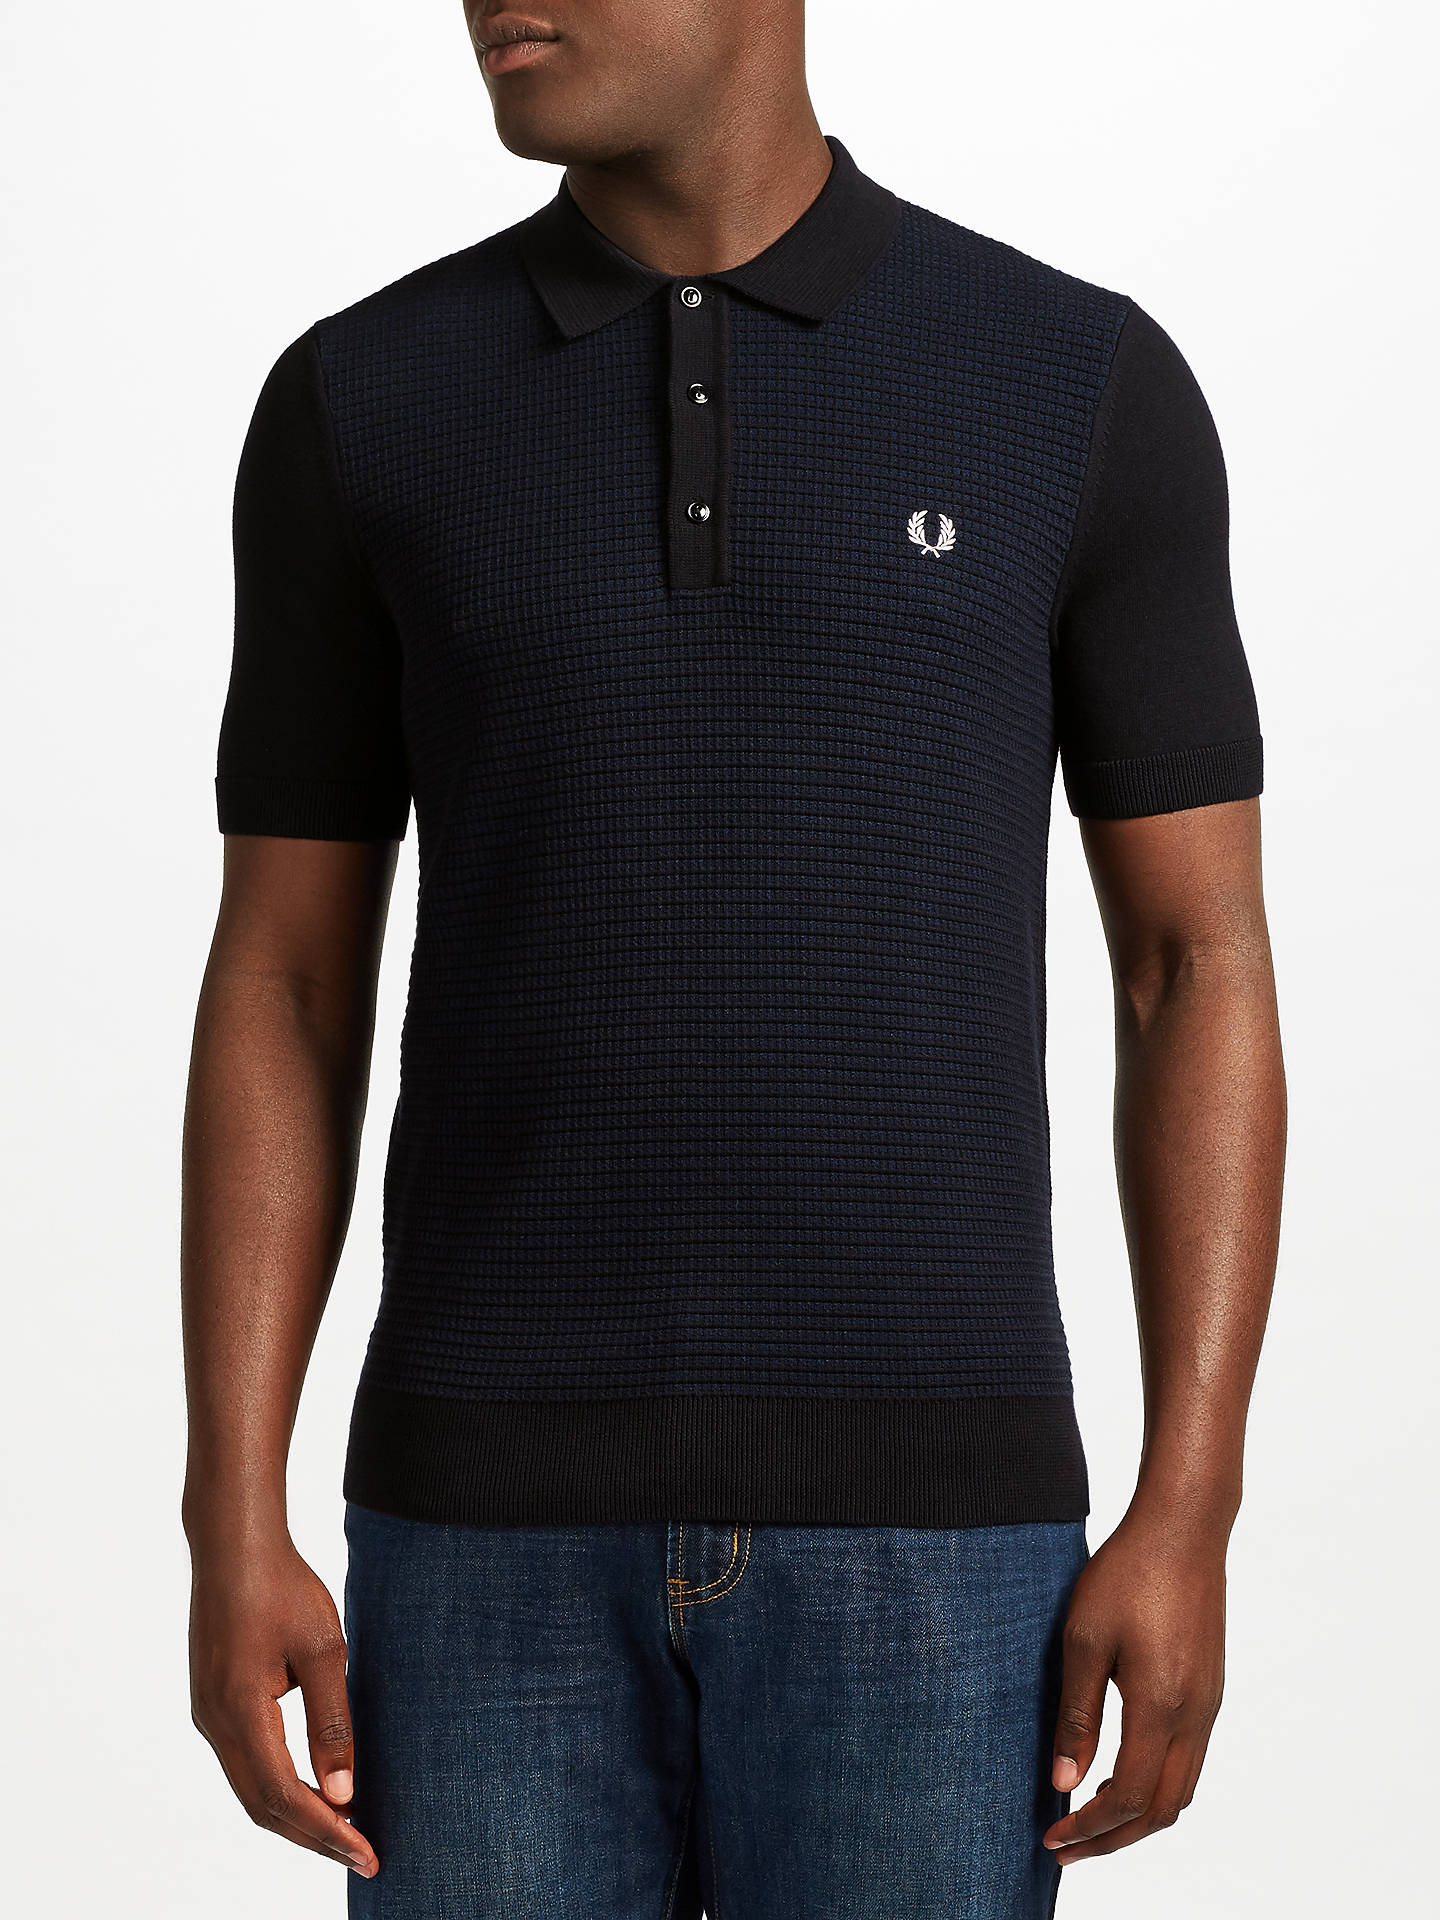 a76b38a37 Buy Fred Perry Textured Knit Polo Shirt